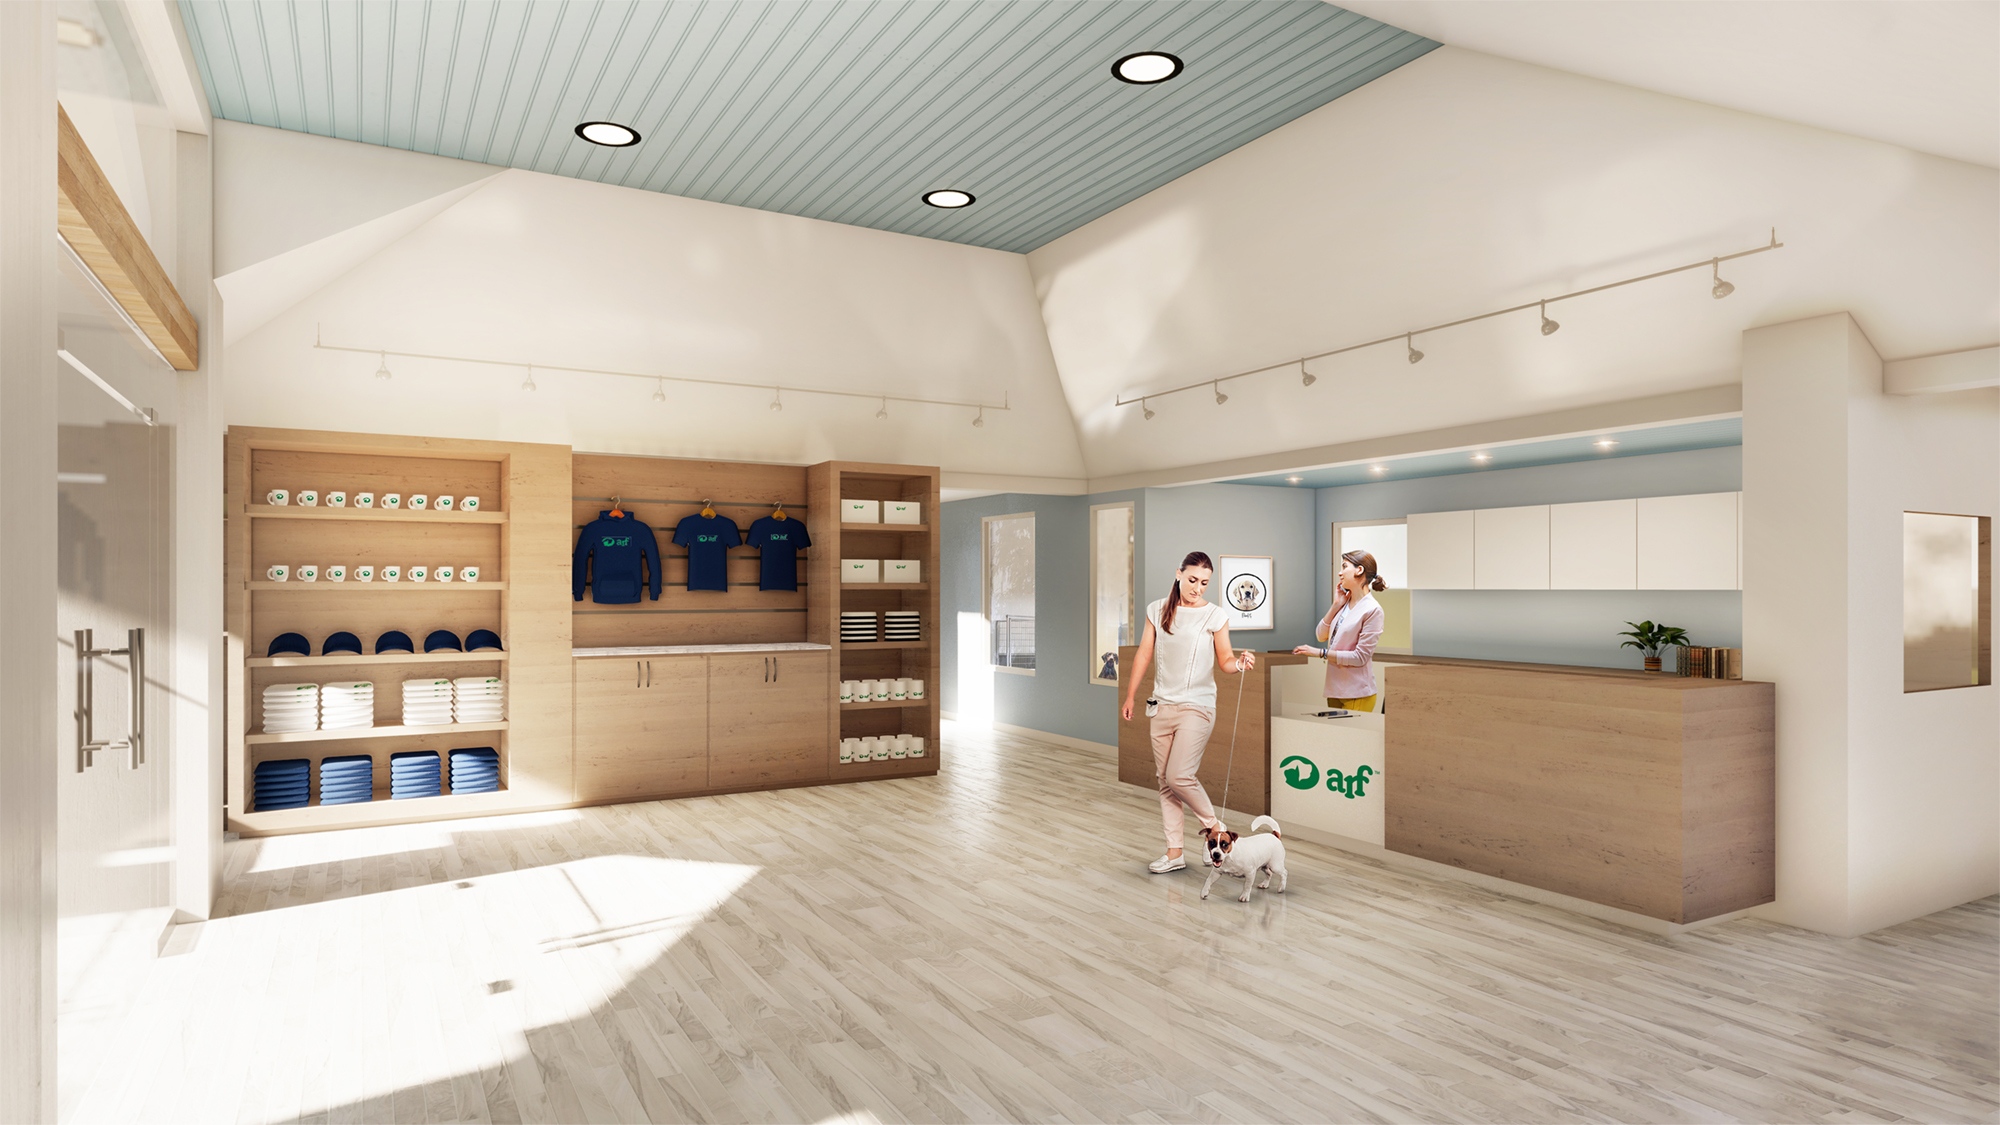 A rendering of the planned Richard Wells McCabe Welcome Center that will be a centerpiece of a major renovation plan at the Animal Rescue Fund of the Hamptons. BACON GROUP INC.